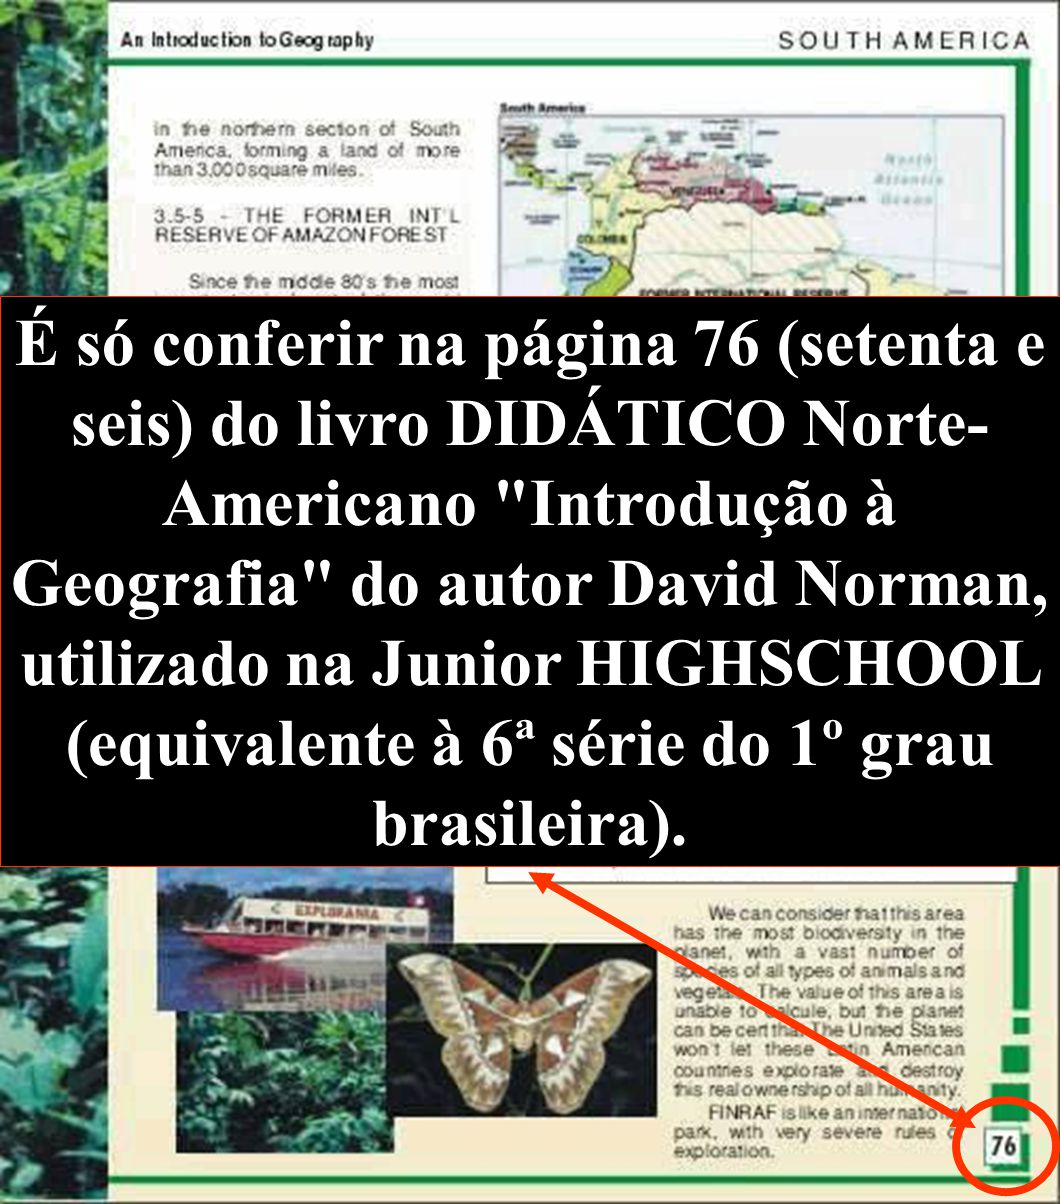 É só conferir na página 76 (setenta e seis) do livro DIDÁTICO Norte- Americano Introdução à Geografia do autor David Norman, utilizado na Junior HIGHSCHOOL (equivalente à 6ª série do 1º grau brasileira).